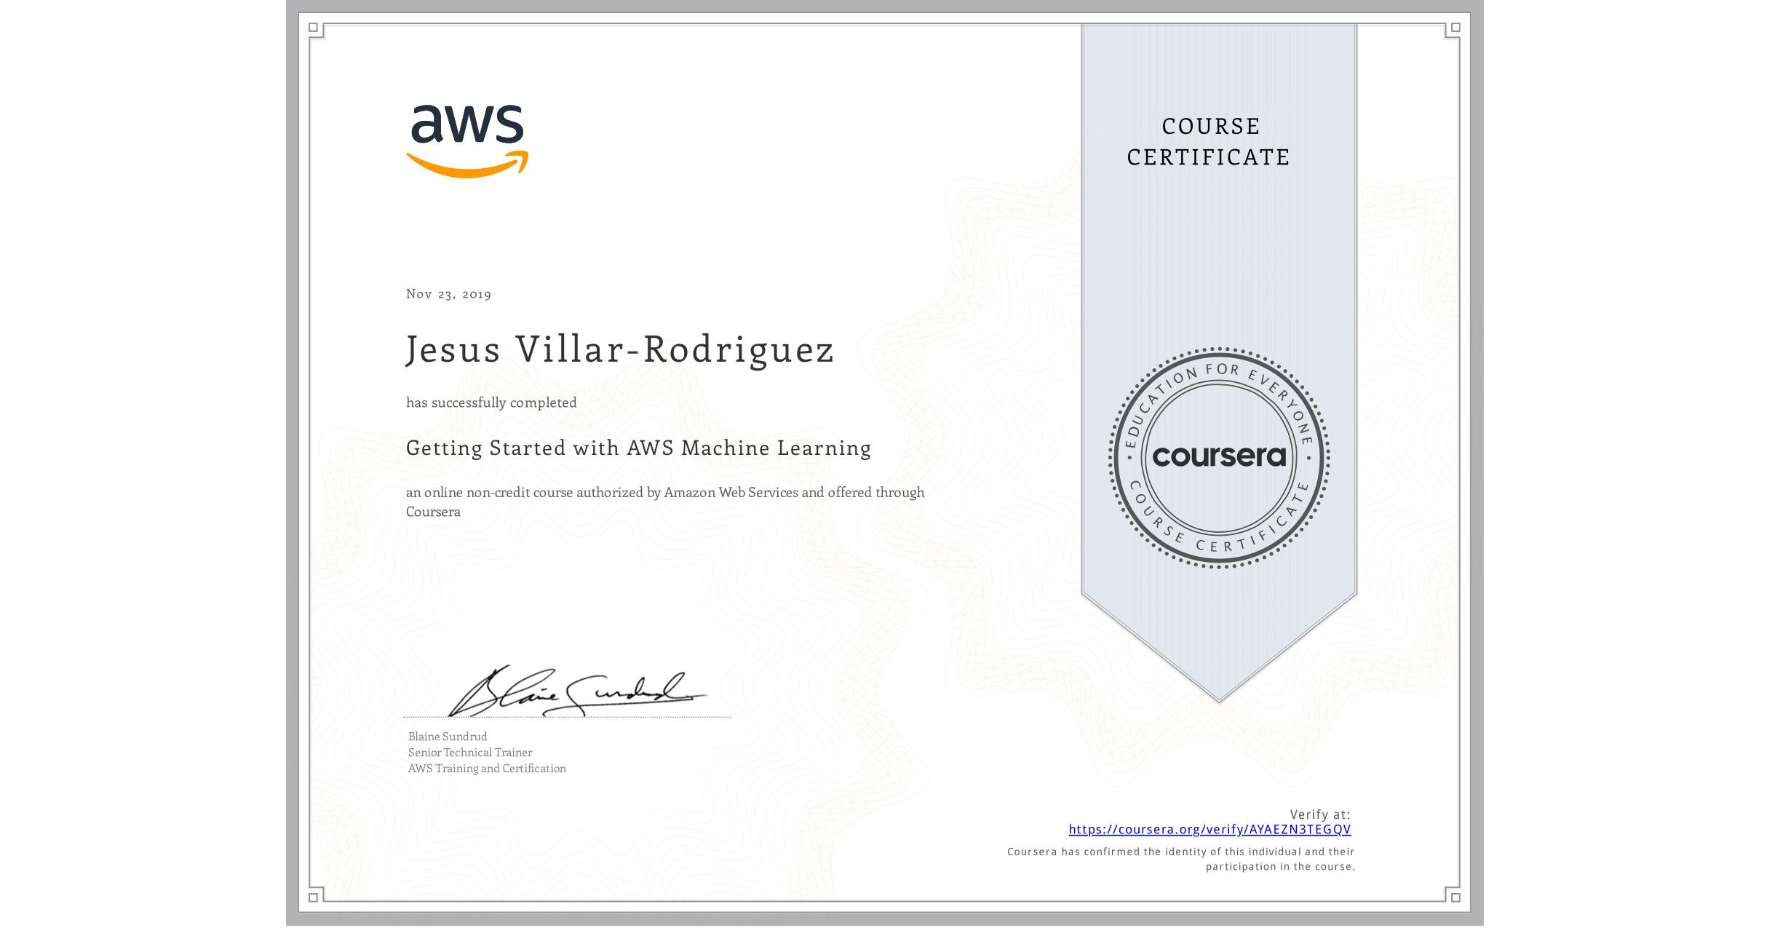 View certificate for Jesus Villar-Rodriguez , Getting Started with AWS Machine Learning, an online non-credit course authorized by Amazon Web Services and offered through Coursera